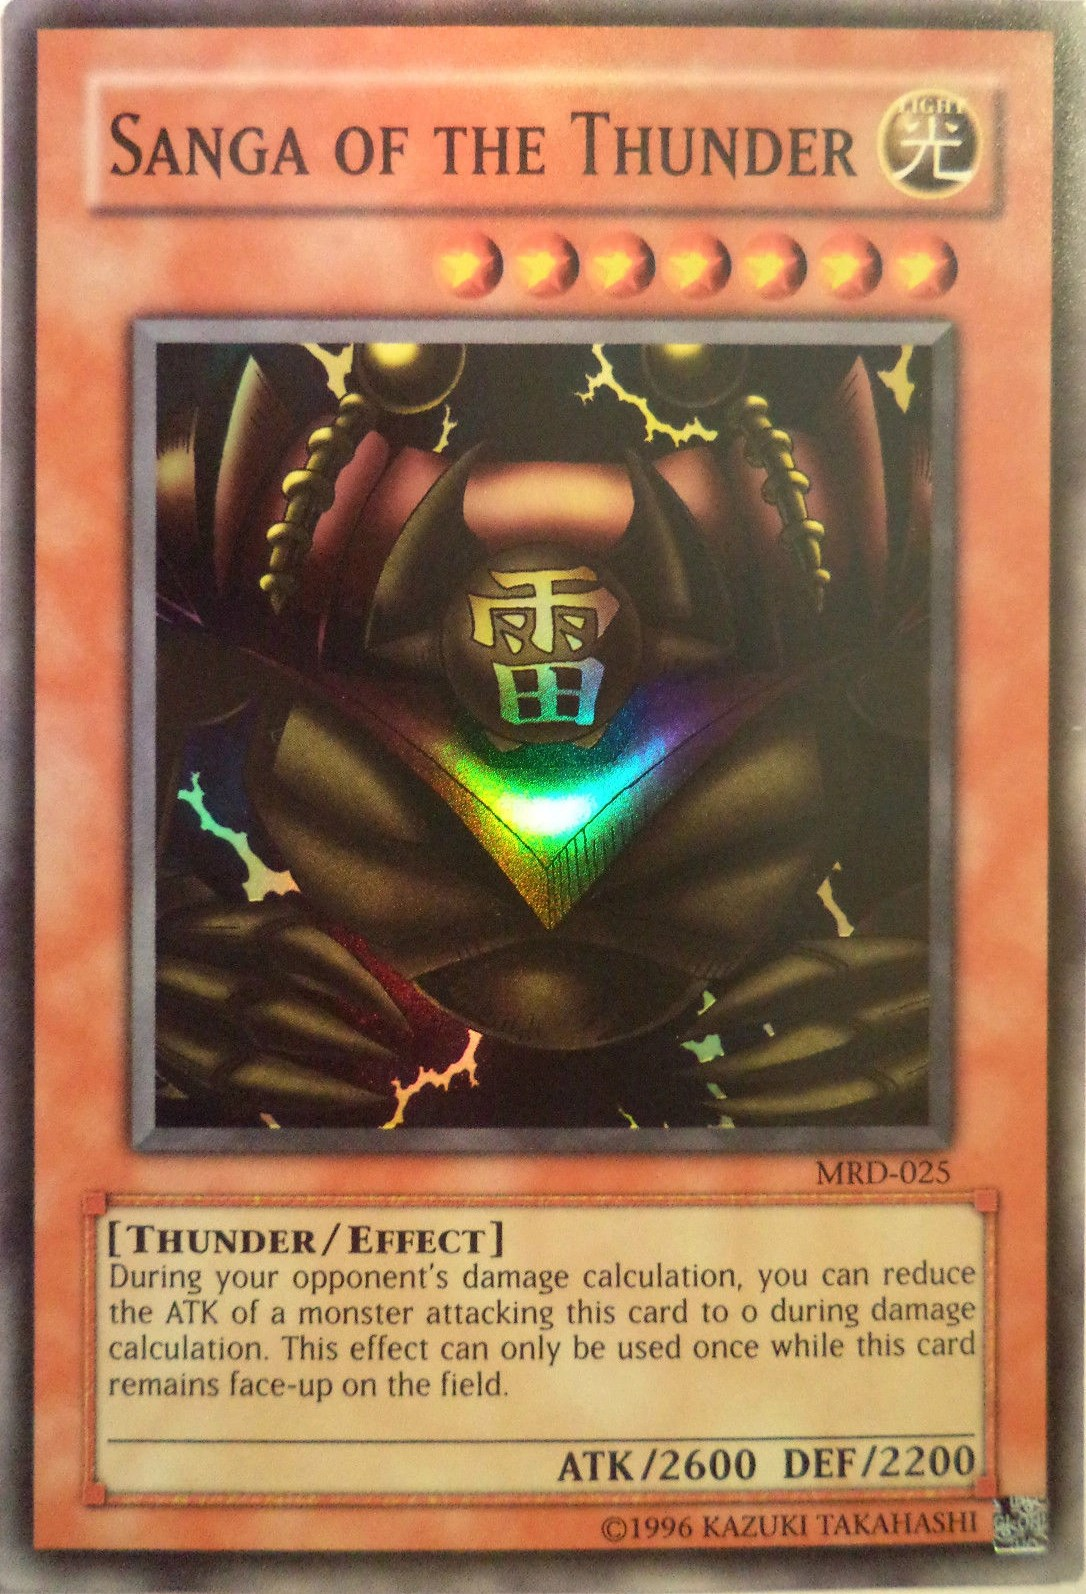 Legendary Collection 1 Reprint Card Gallery Sanga Of The Thunder Yu Gi Oh Fandom